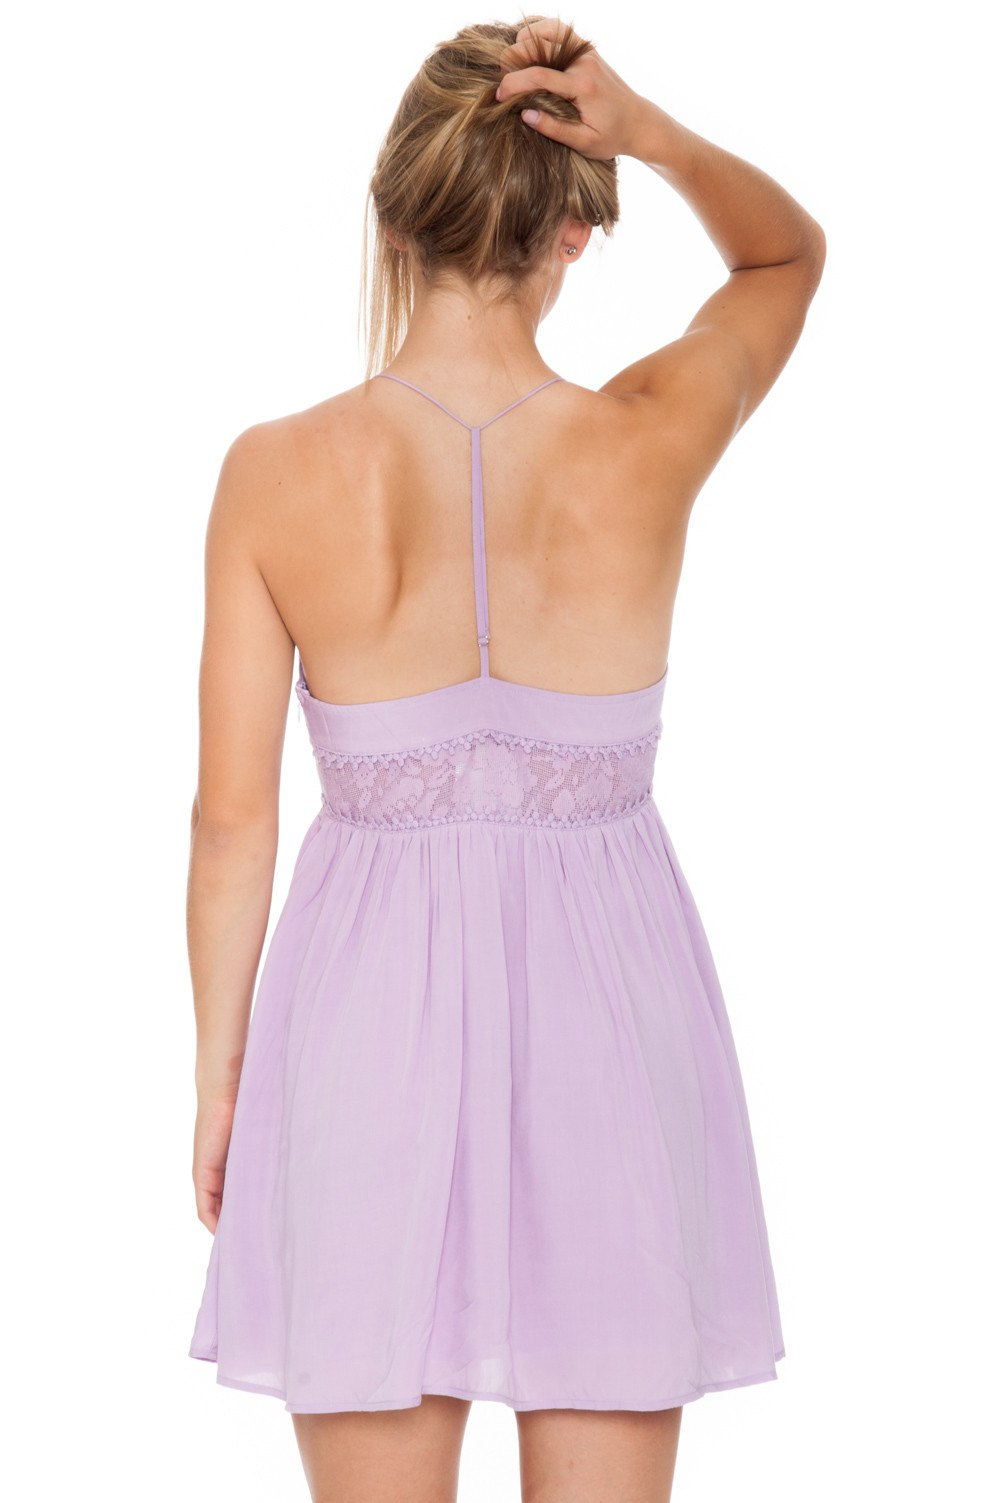 Dress - Lilac Boho Peek-a-Boo - 3